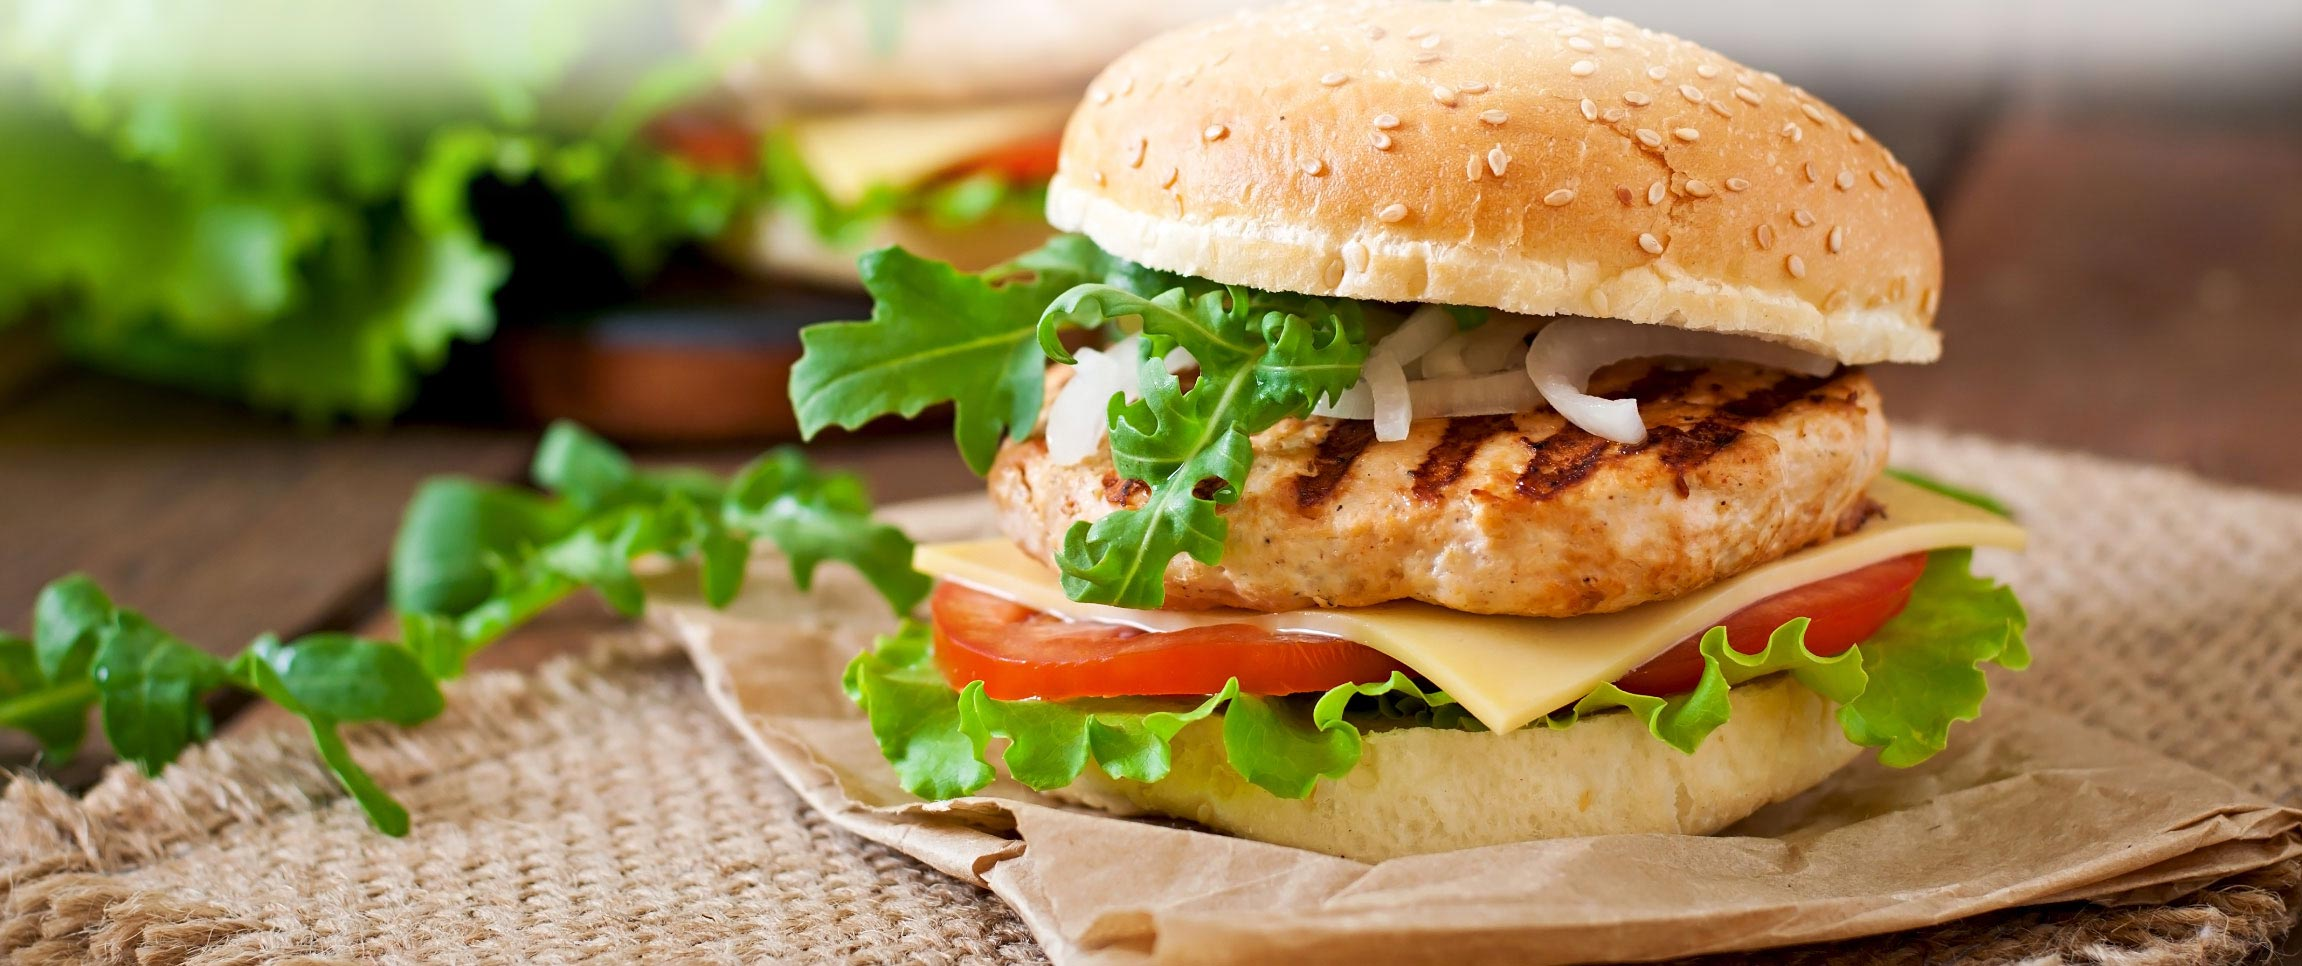 Tips for Turkey and Chicken Burgers